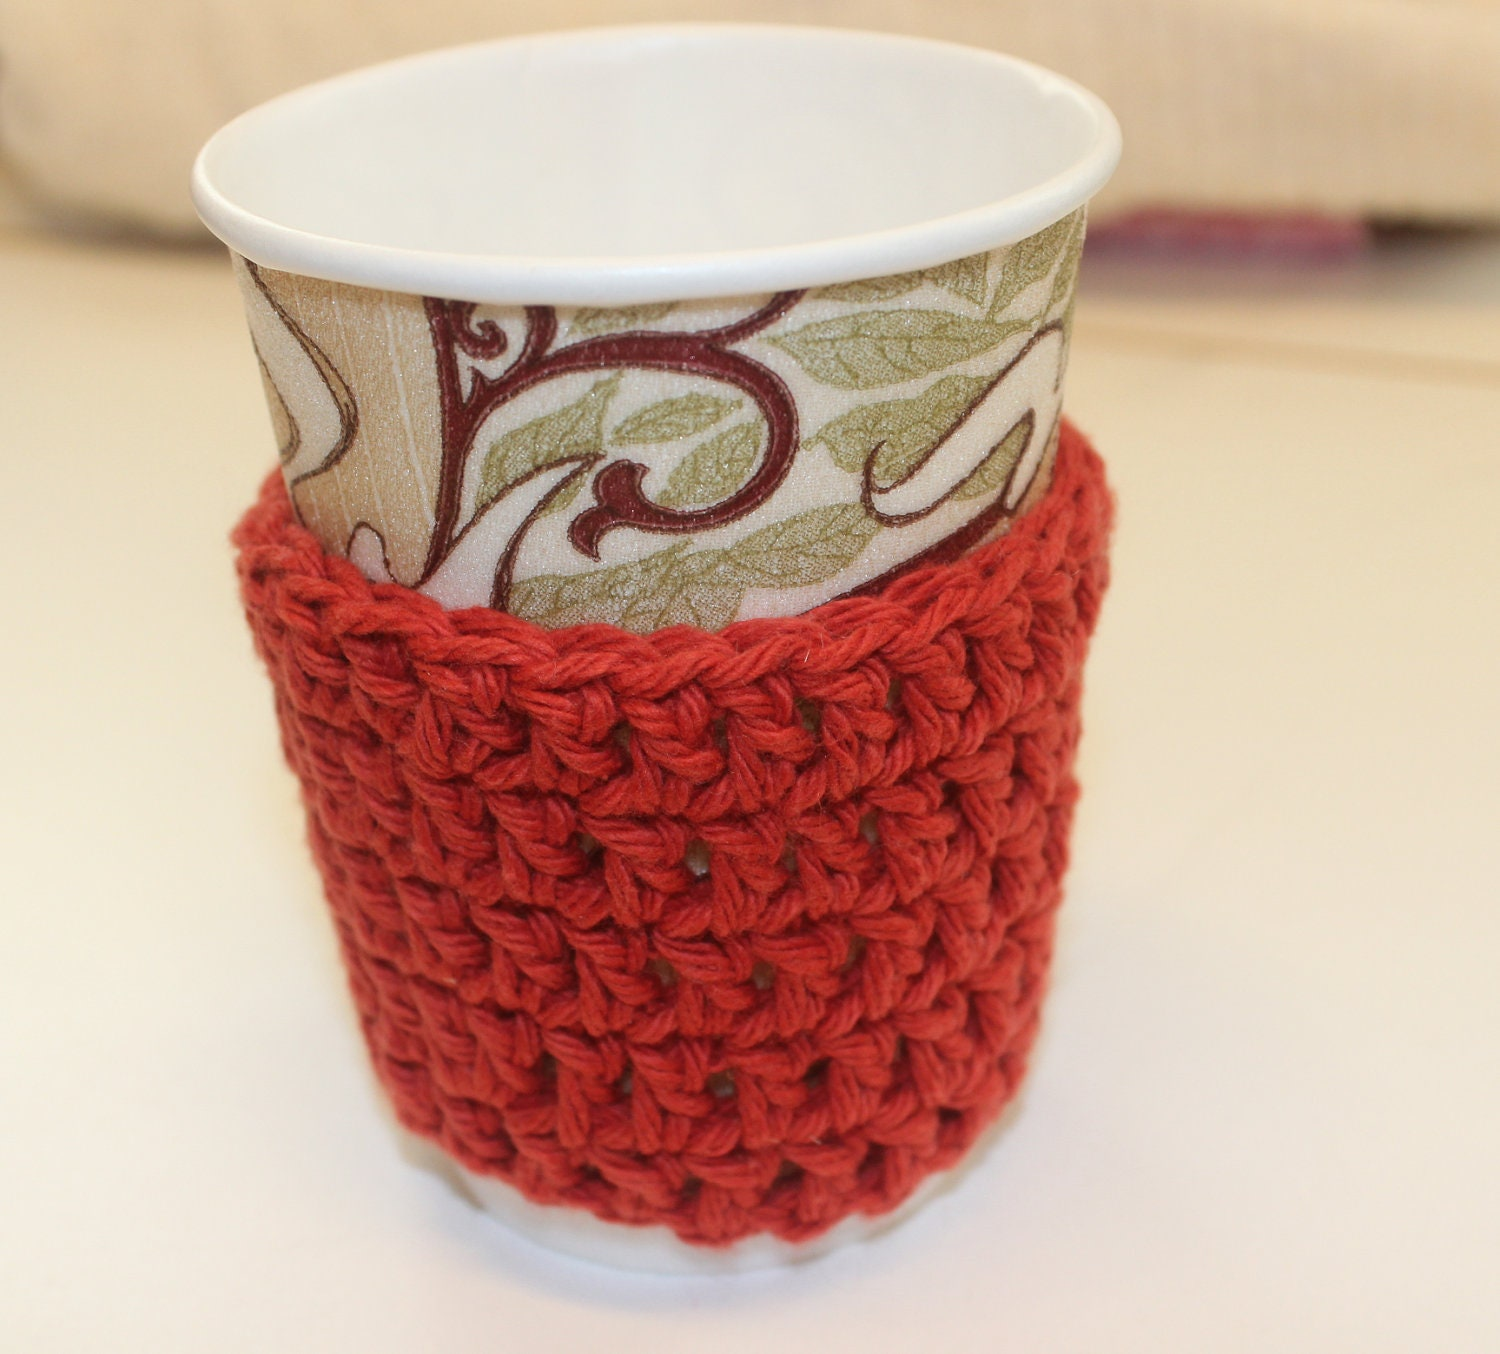 Eco Friendly Reusable Crocheted Coffee/Tea Cup Cozy/Sleeve, Paprika - LittleMonkeyShop